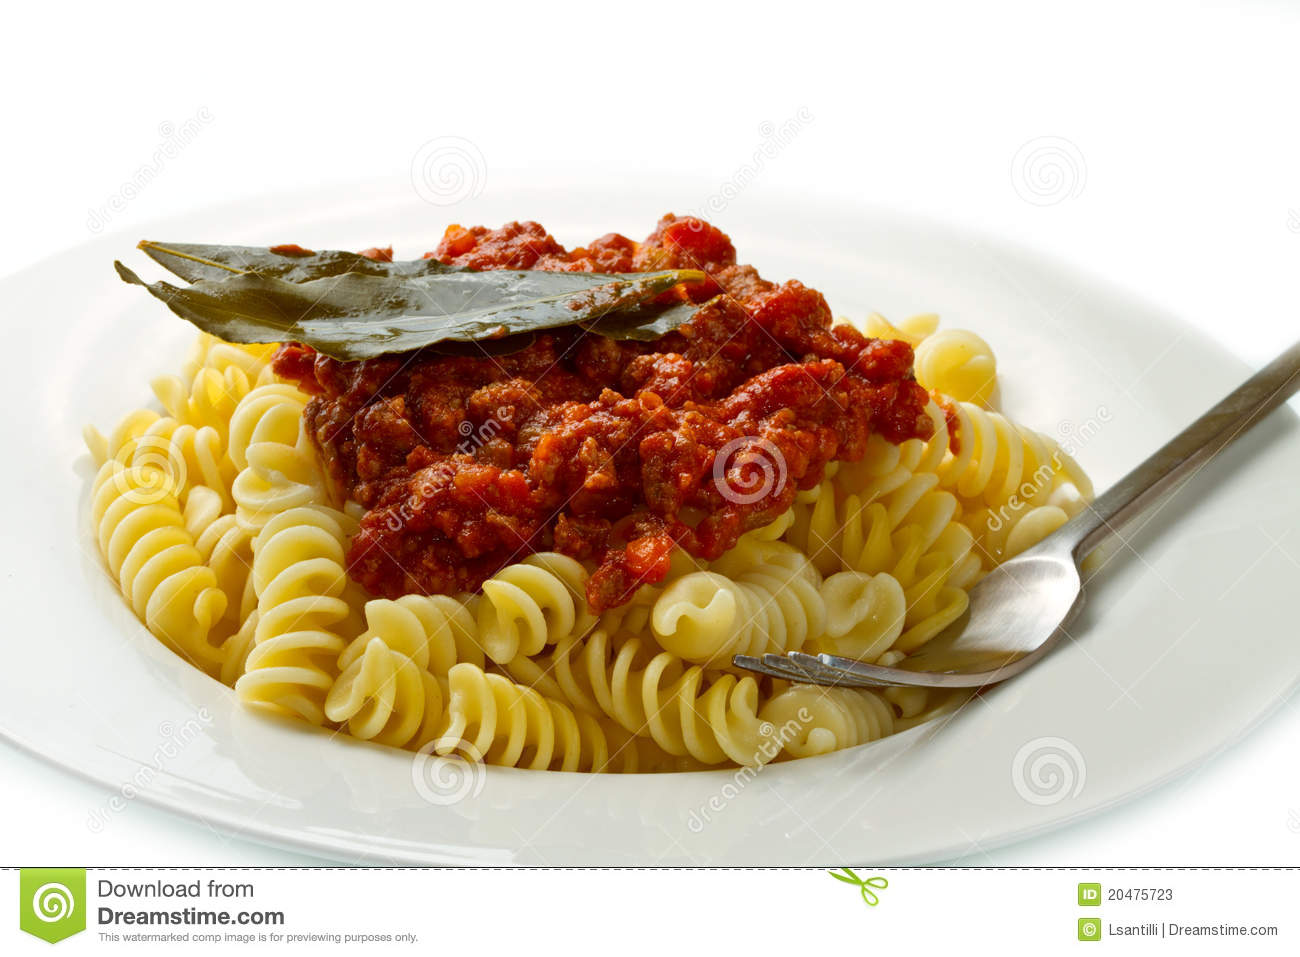 More similar stock images of ` Pasta with bolognese sauce `